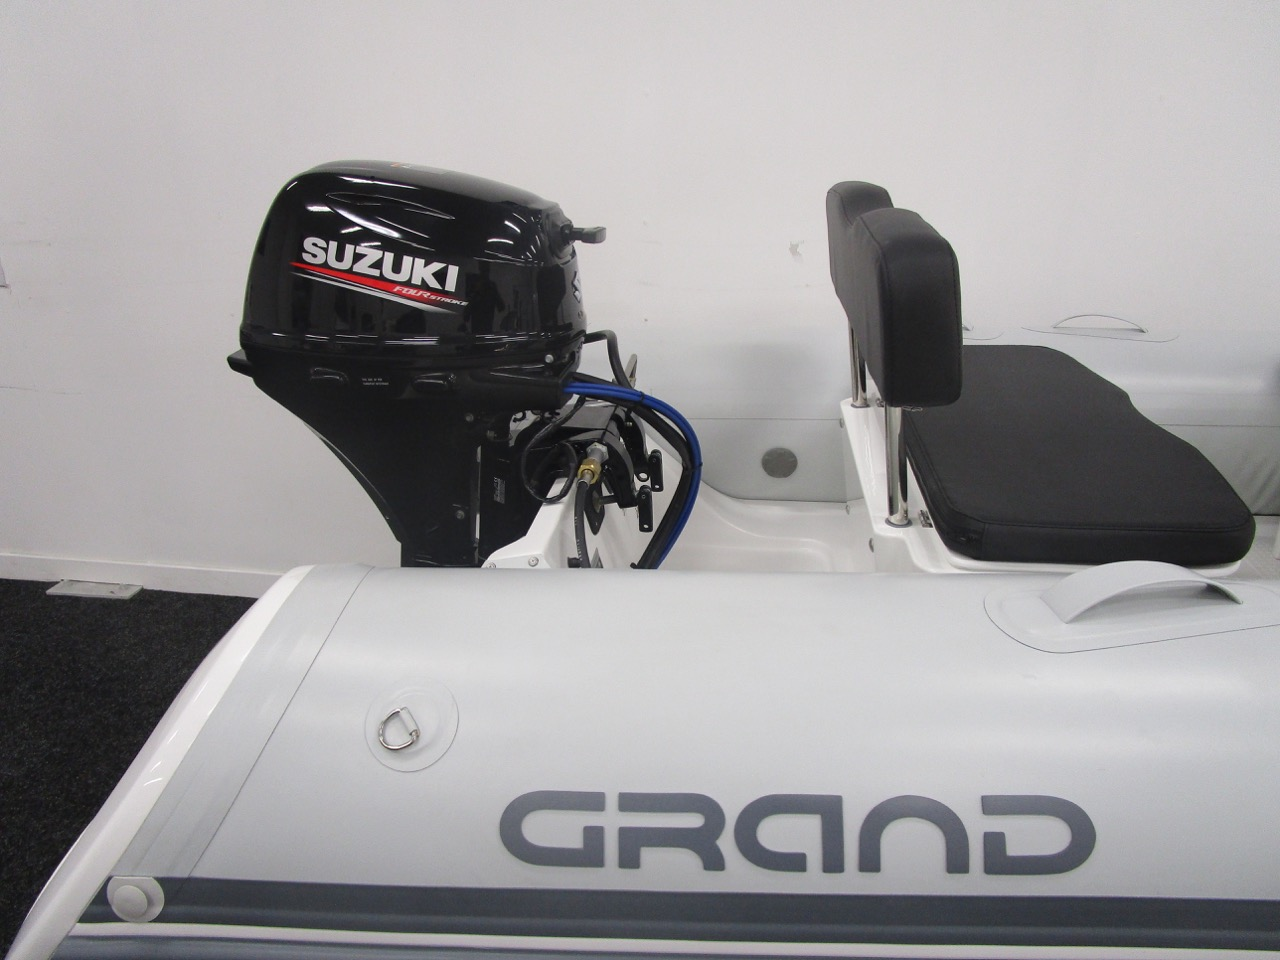 GRAND S330 RIB tender stern and Suzuki DF20ATS outboard